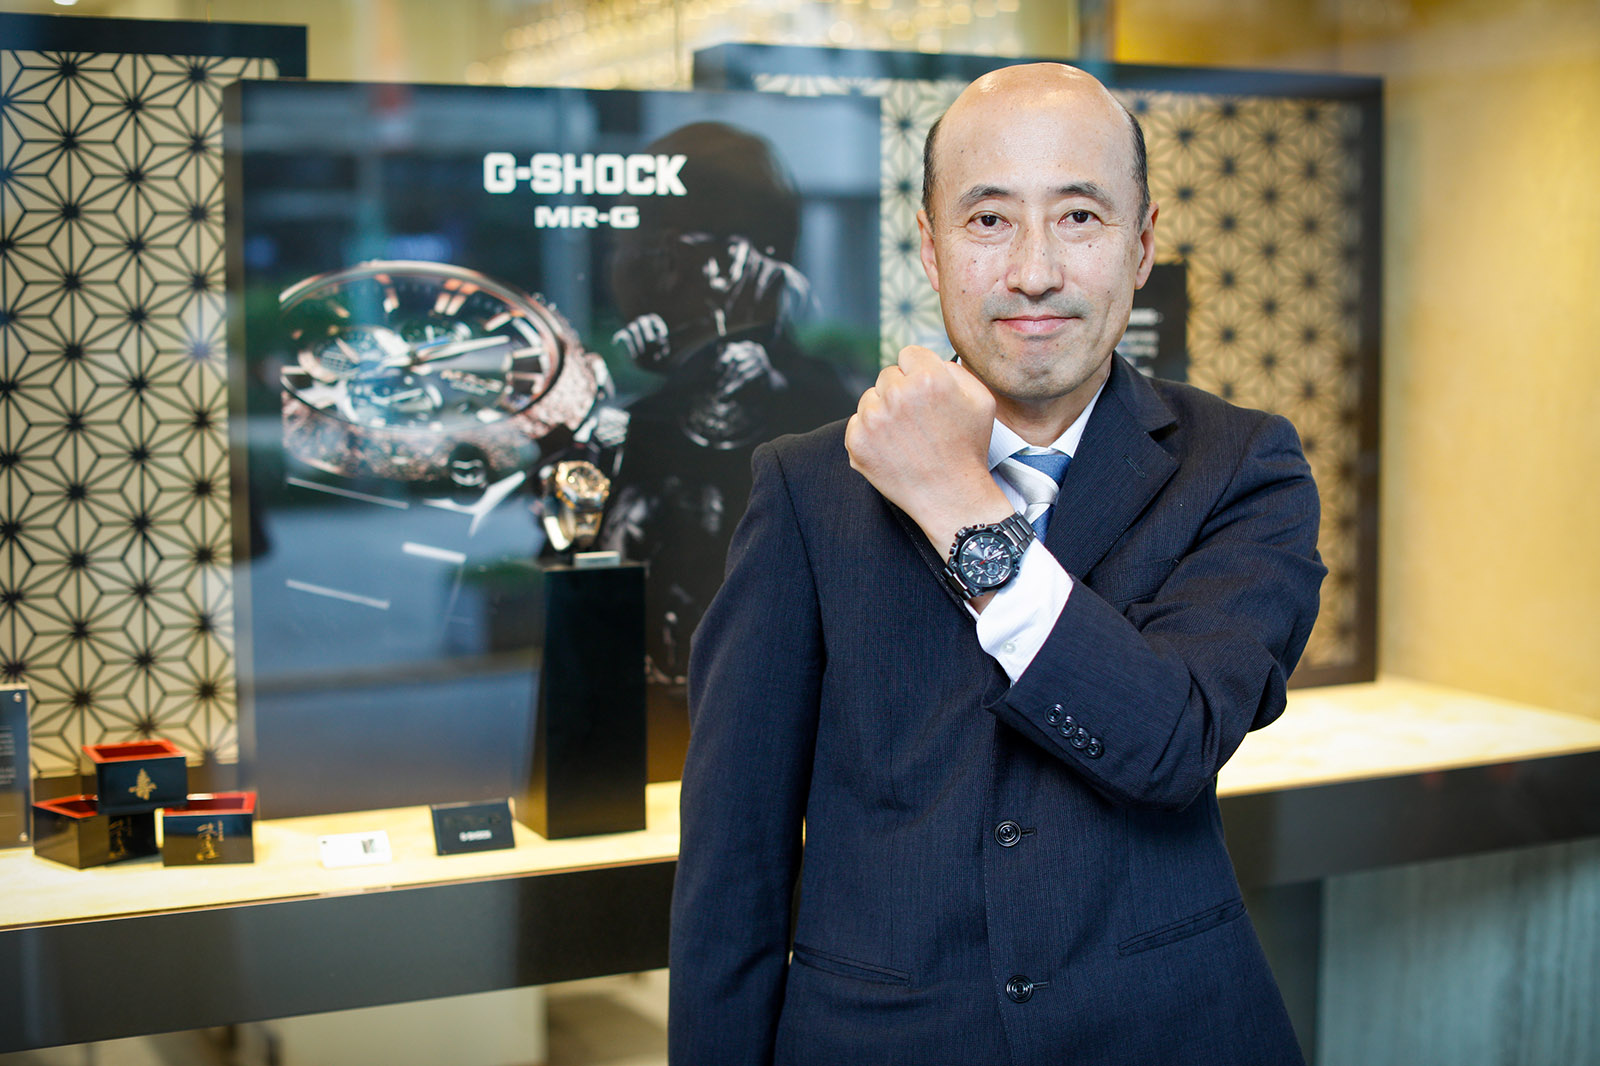 Shingo Ishizaka - MR-G G-SHOCK